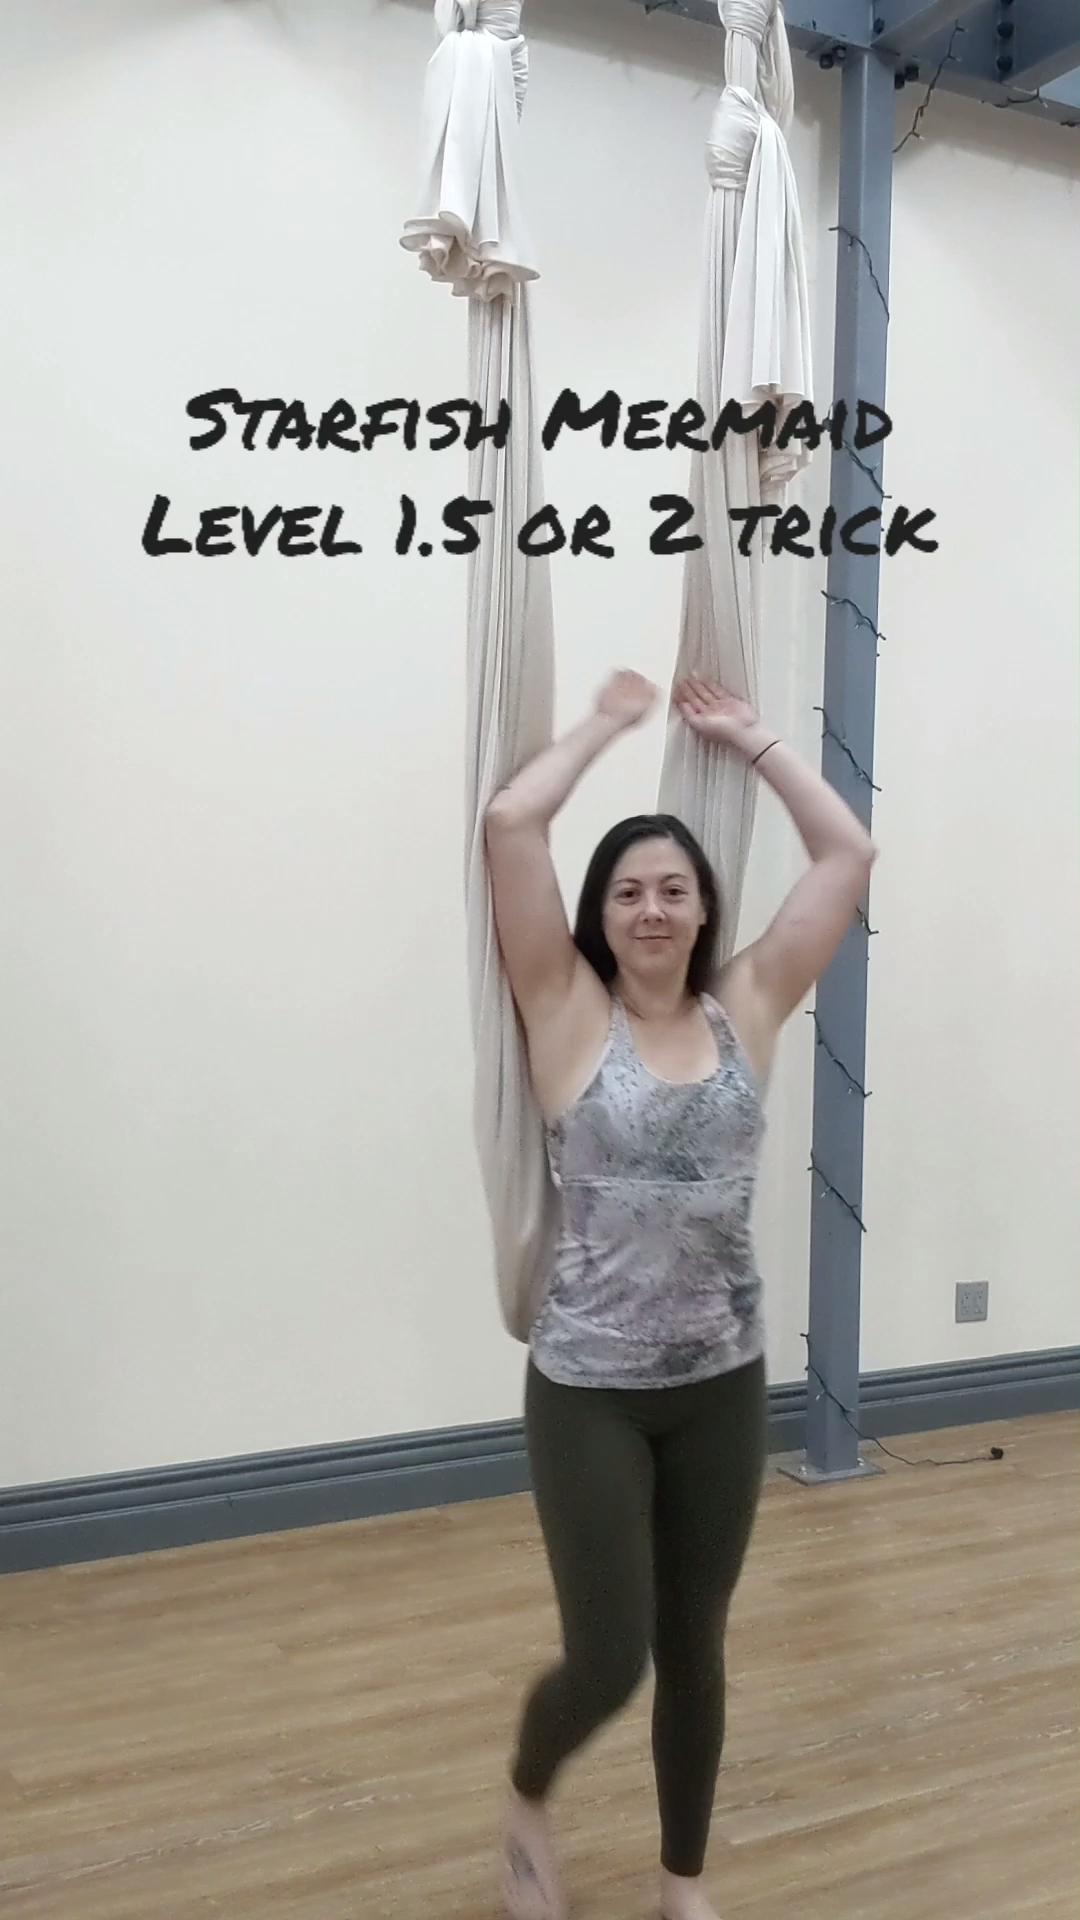 Aerial Yoga Tricks! Learn how to do and teach aerial tricks for your level 2 students. Learn how to do proper progressions, what to drill out, and how to know if your student is ready for a trick. Perfect for aerial yoga instructors that are interested in breaking out into more complex sequences for their students. See full video on my Patreon!